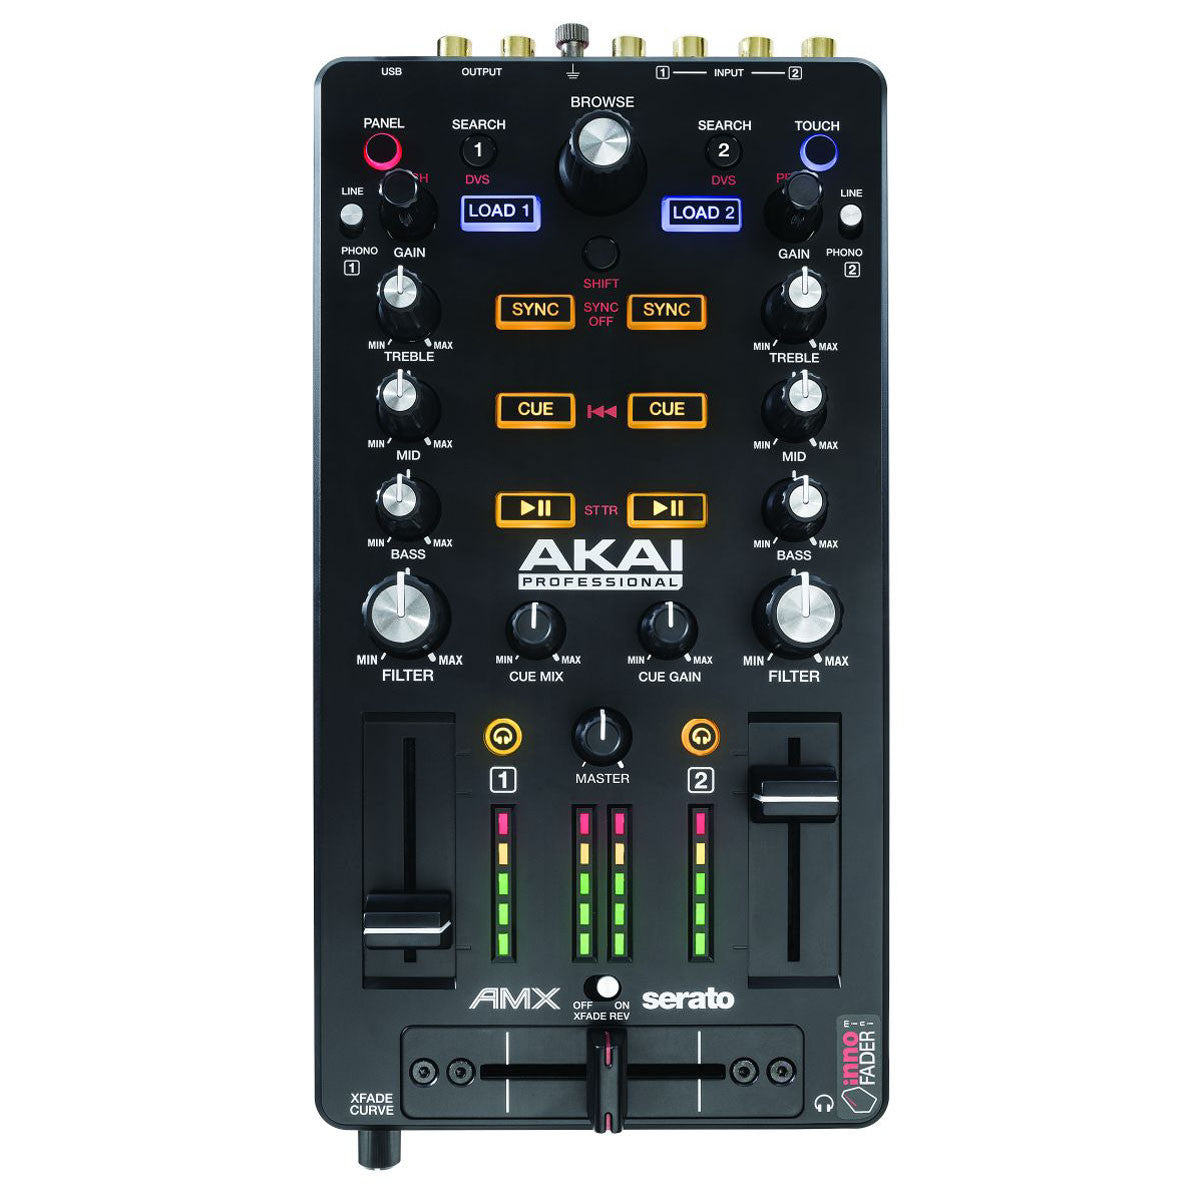 Akai: AMX - Mixing Surface +  Audio Interface for Serato DJ top